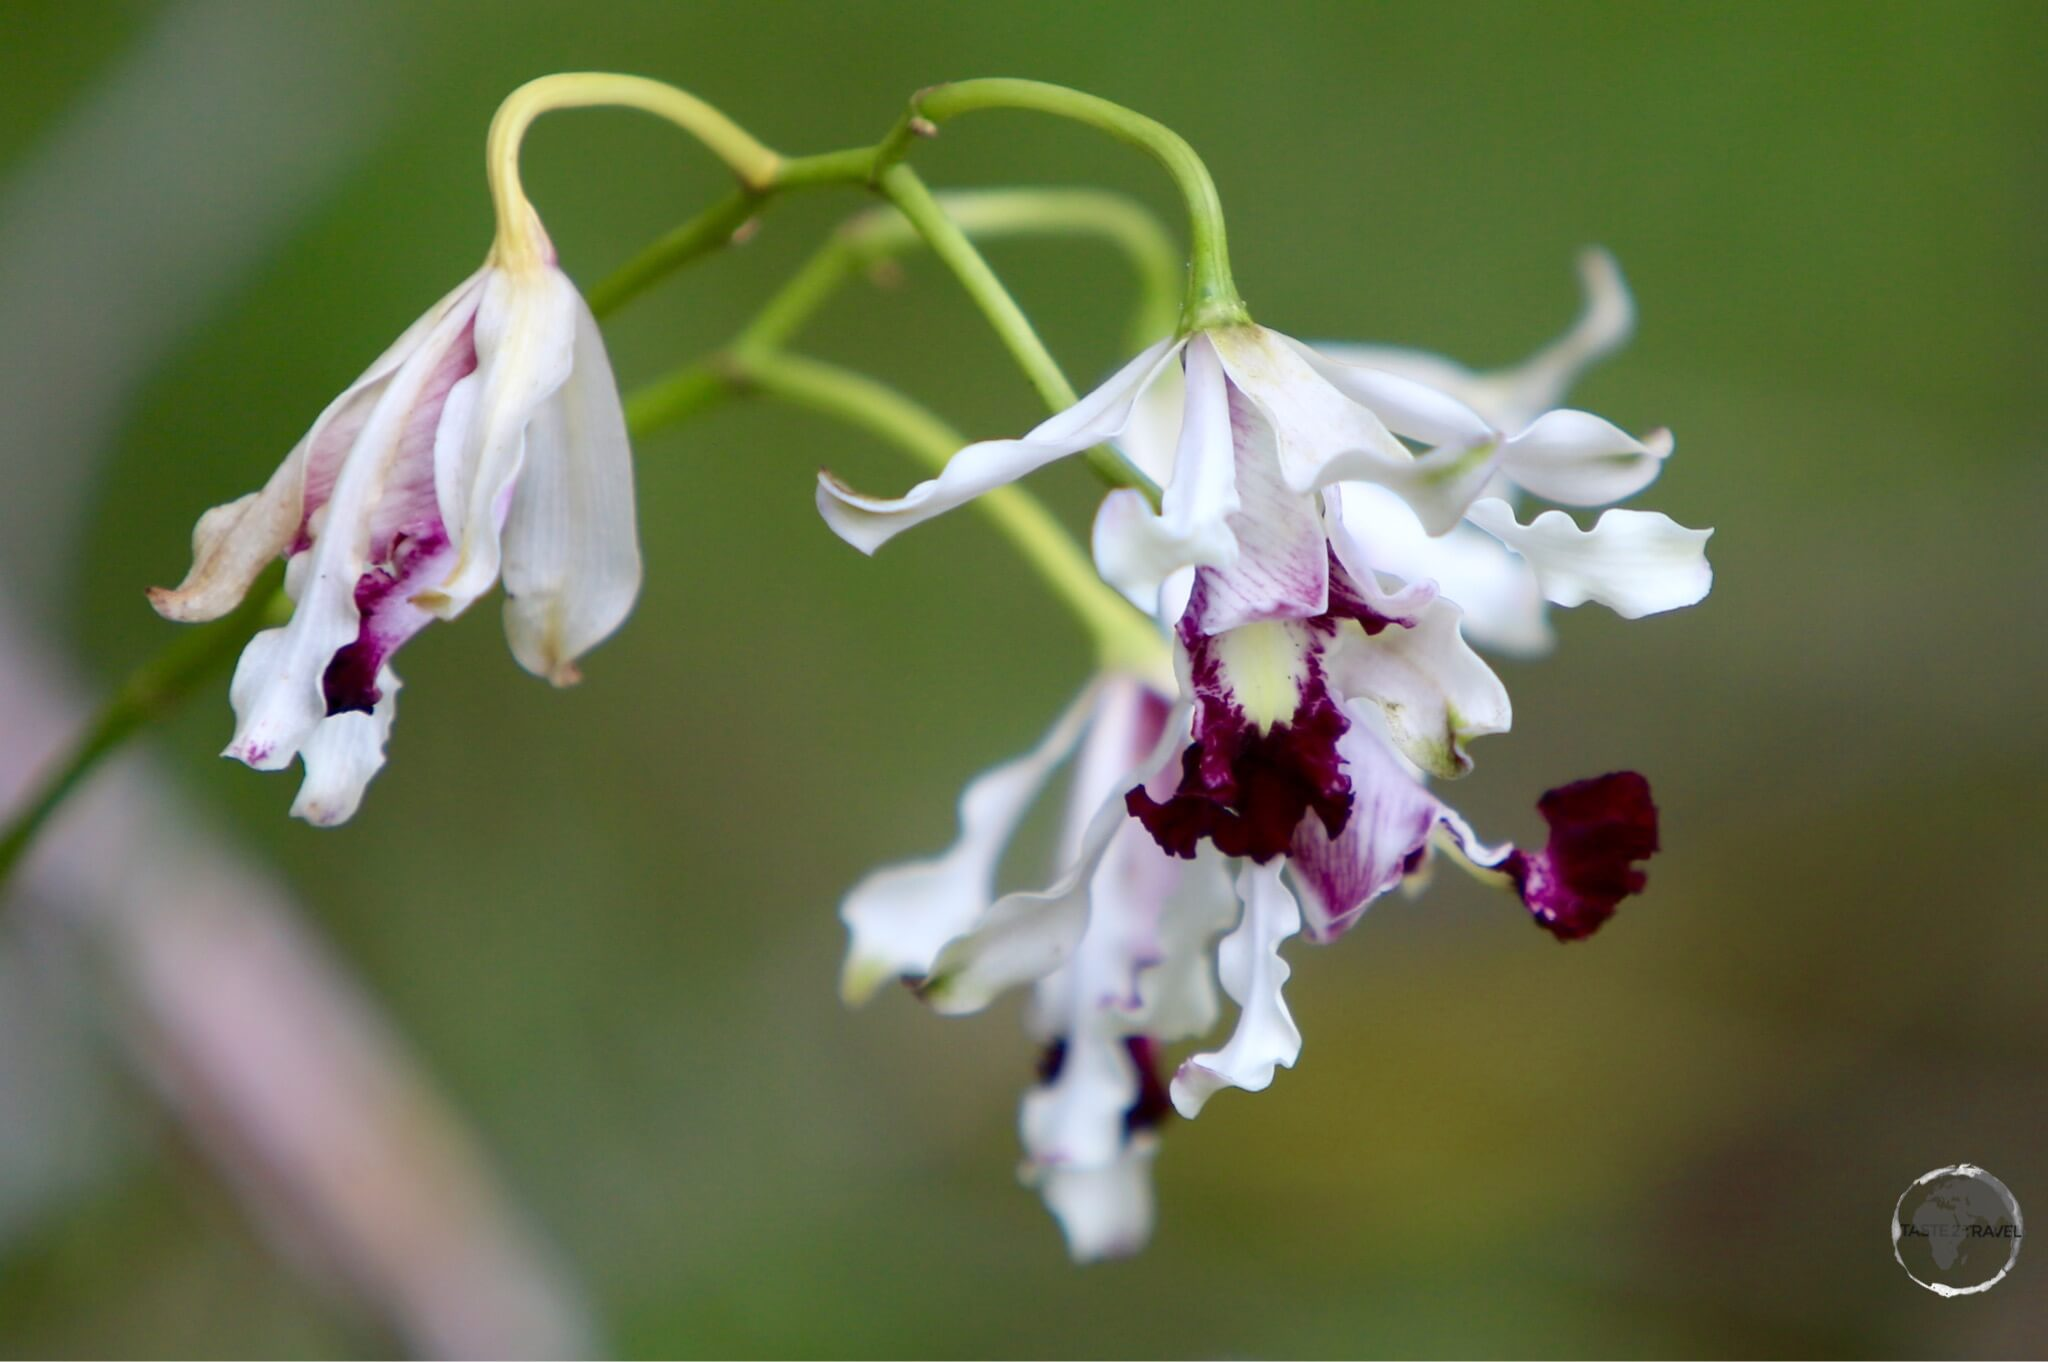 The national flower of the Cayman Islands – the Wild Banana Orchid – in the QEII Botanic Park.